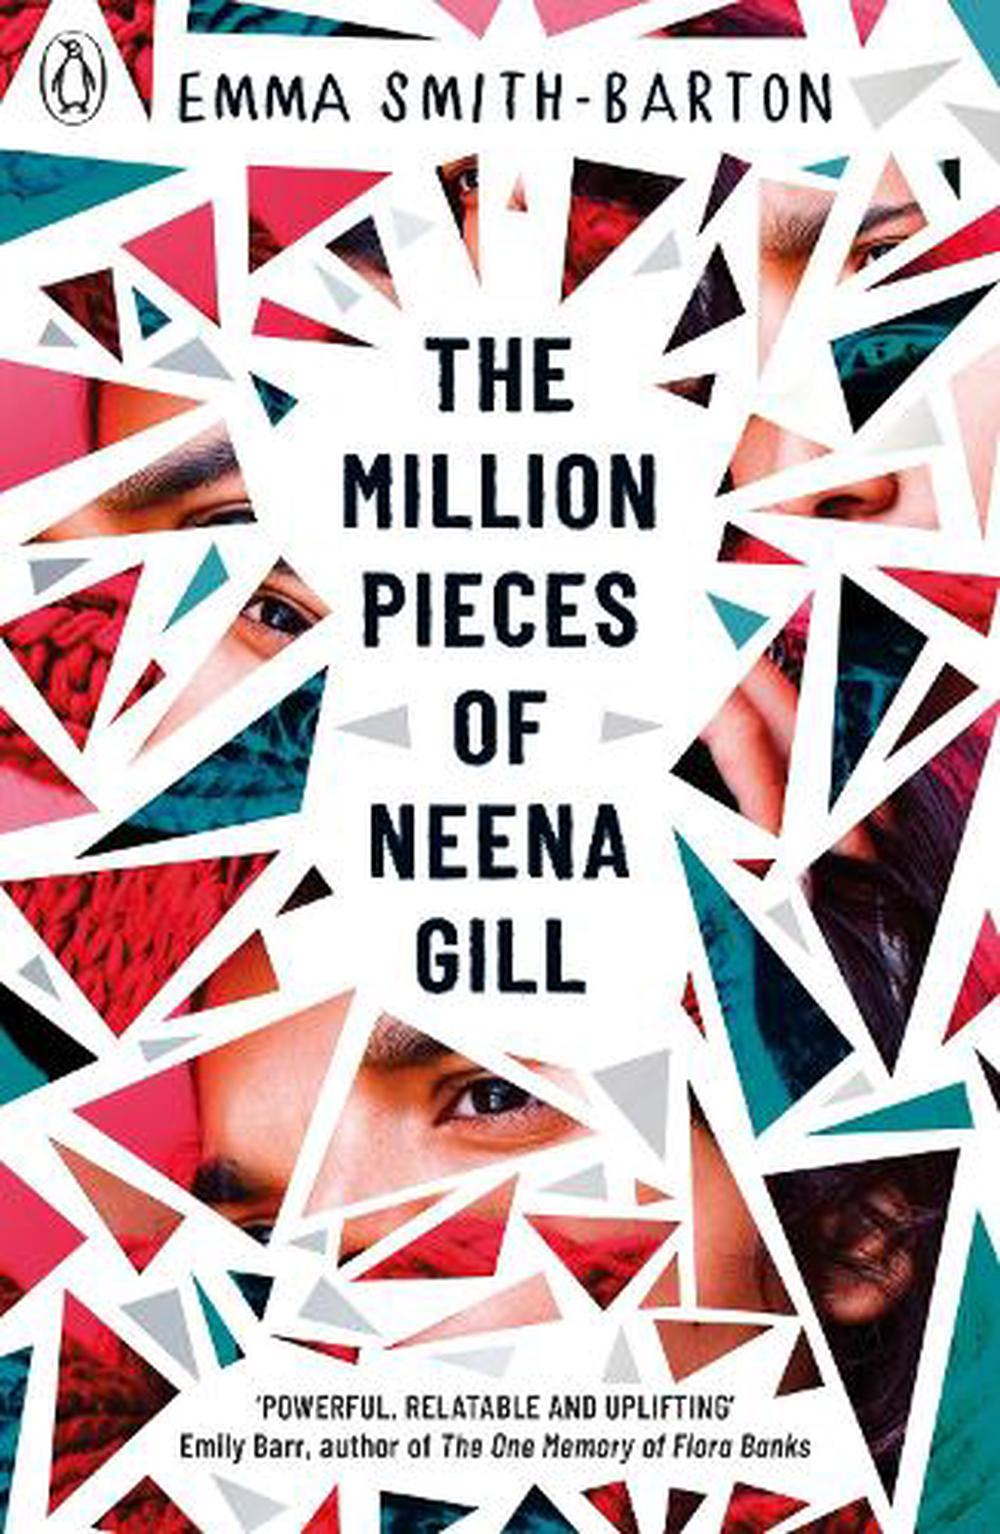 The Million Pieces of Neena Gill